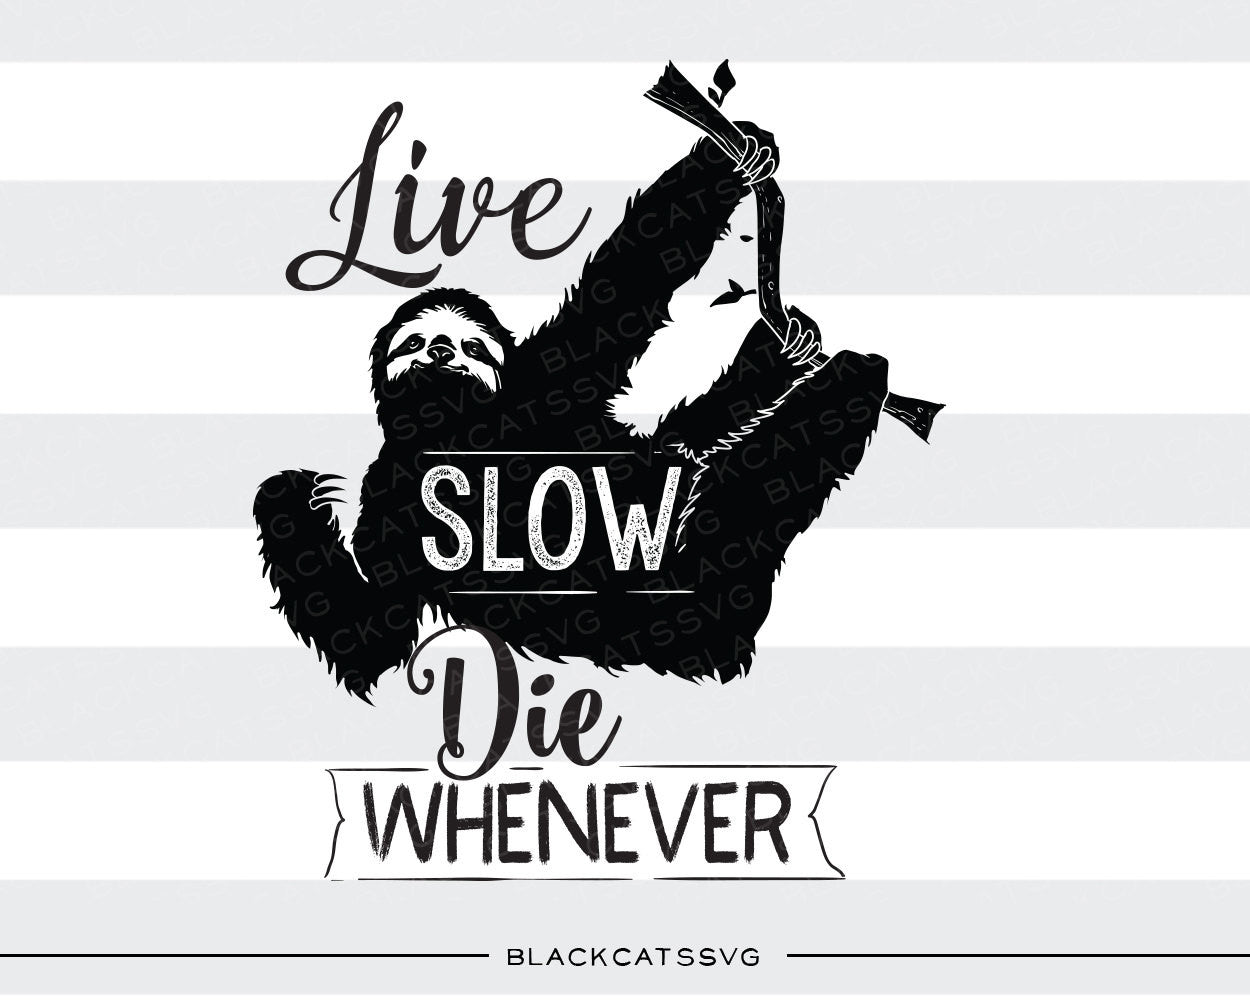 Yeti Promo Code >> Live slow, die whenever sloth - SVG file Cutting File ...